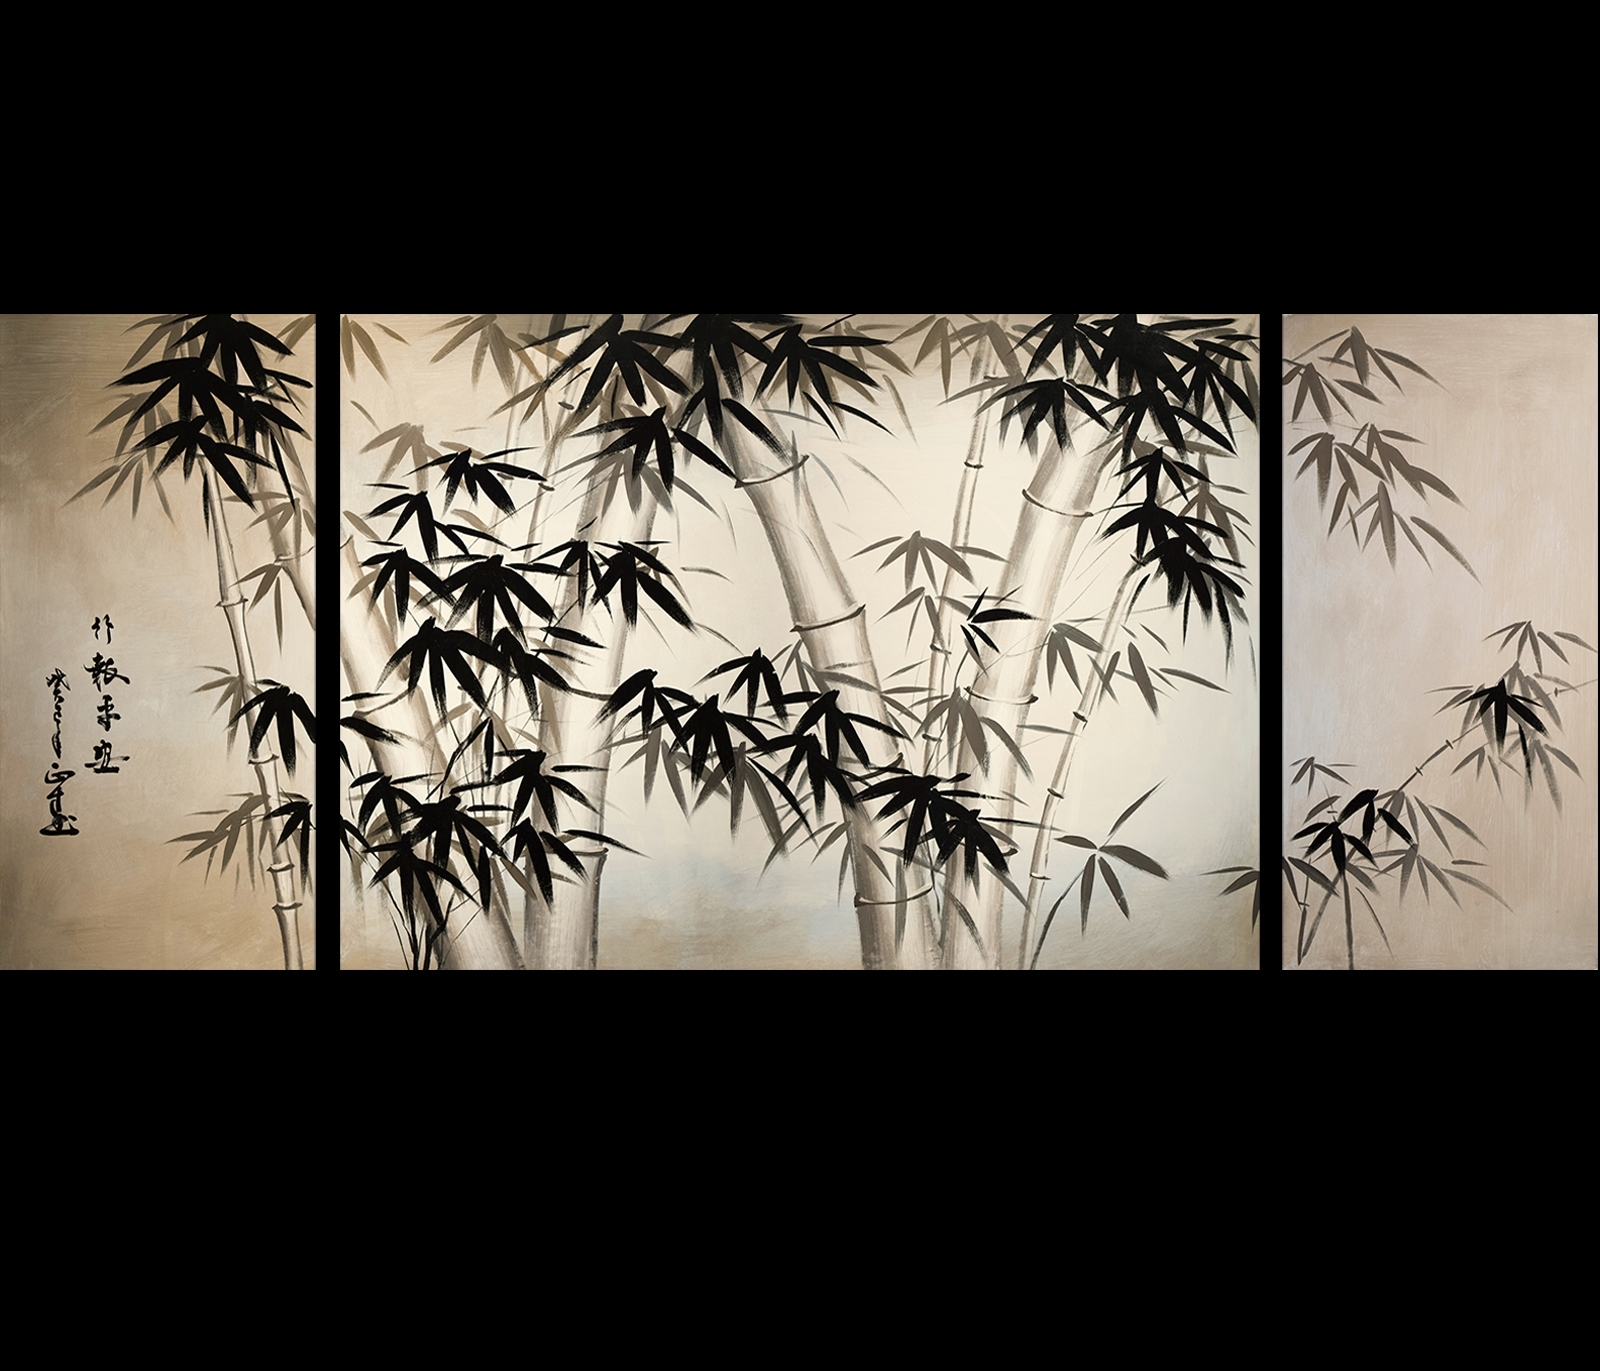 Giclee Artwork Canvas Art Fine Art Prints Wall Art Japanese Bamboo In Most Up To Date Japanese Canvas Wall Art (Gallery 8 of 15)